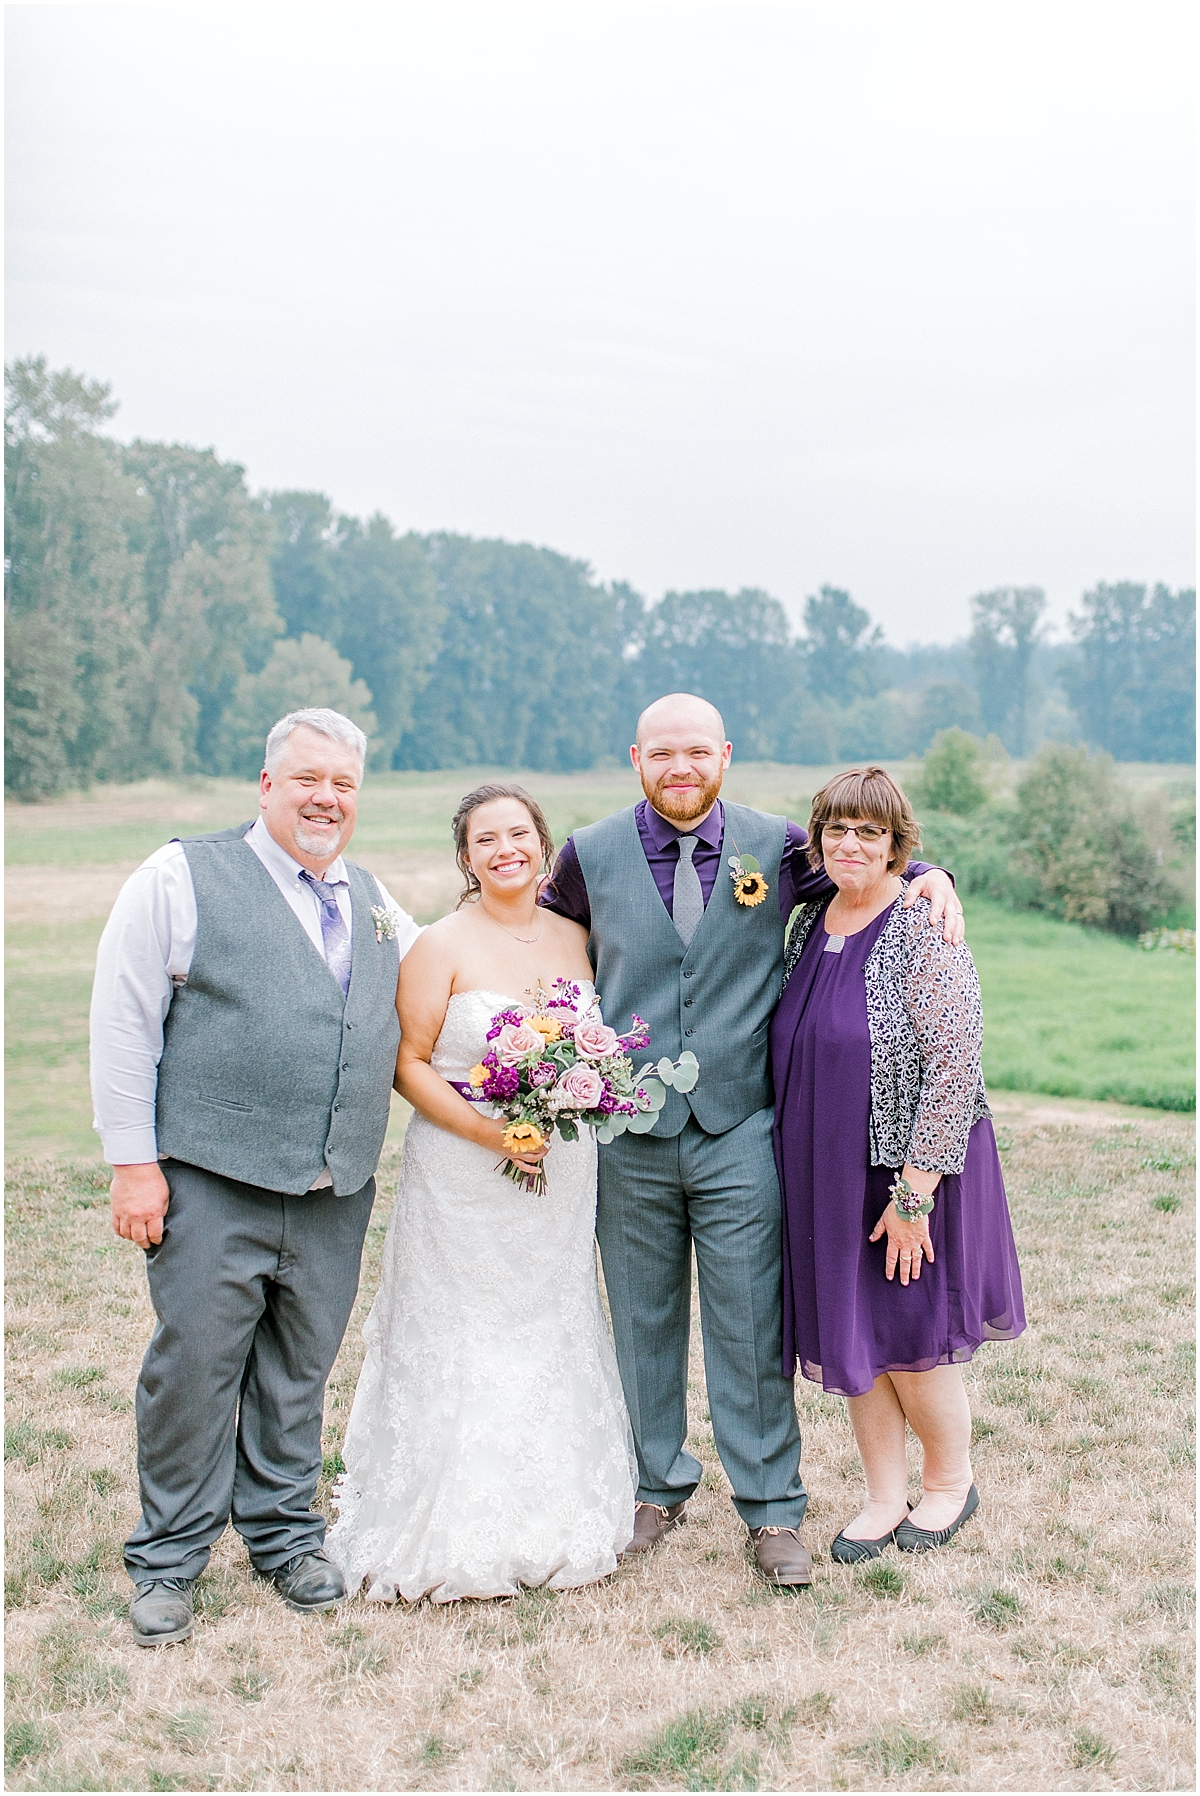 Sunflower themed wedding with purple accents, Emma Rose Company Seattle Wedding Photographer, Light and Airy photographer Kindred Presets Wedding Details PNW_0161.jpg